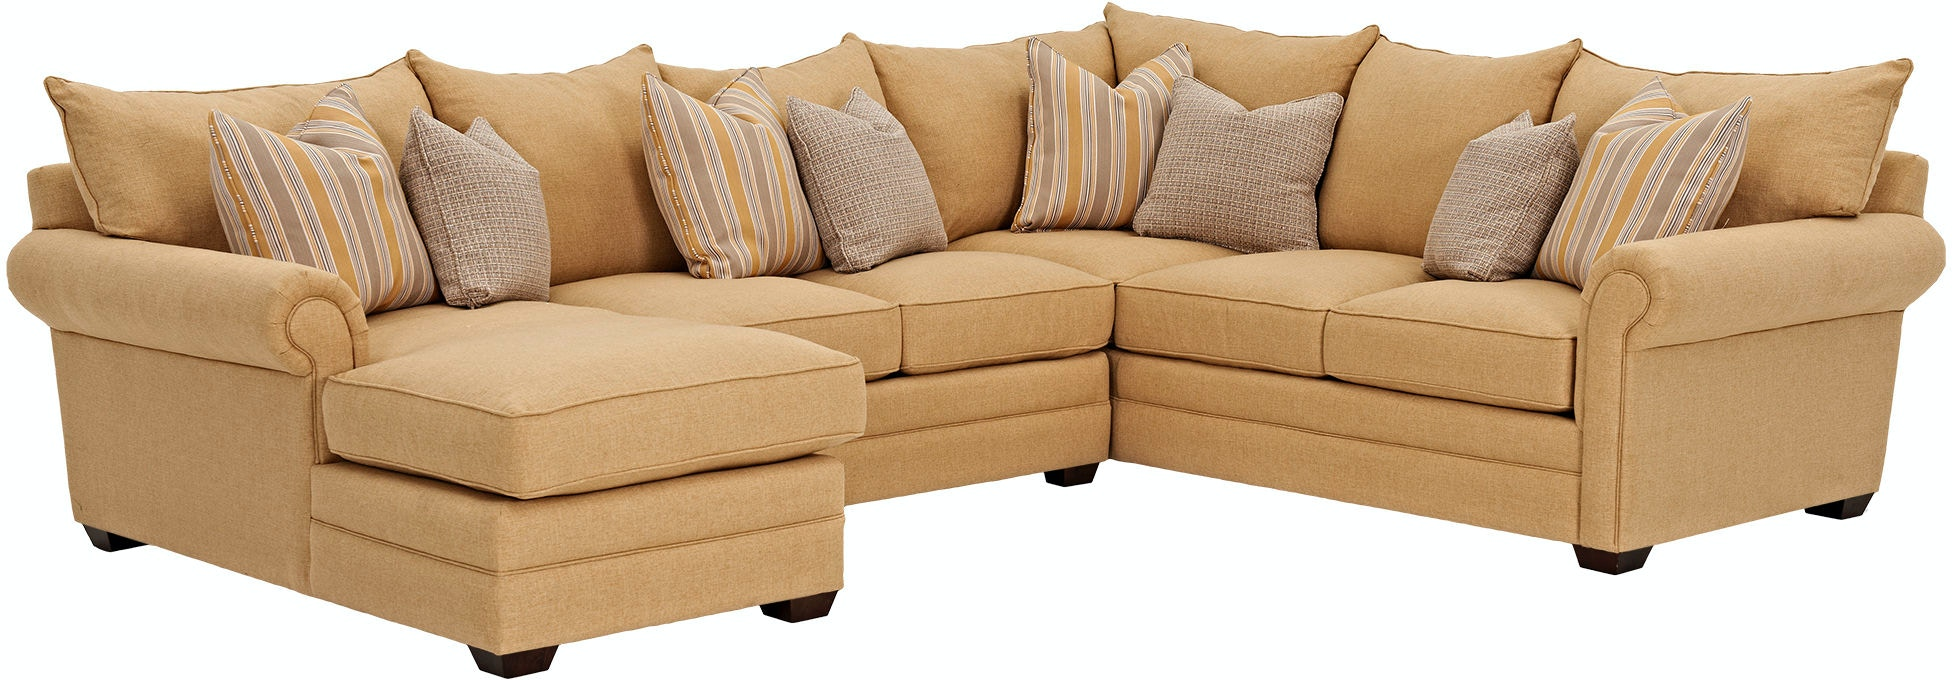 Klaussner Living Room Huntley D Sectional Klaussner Home